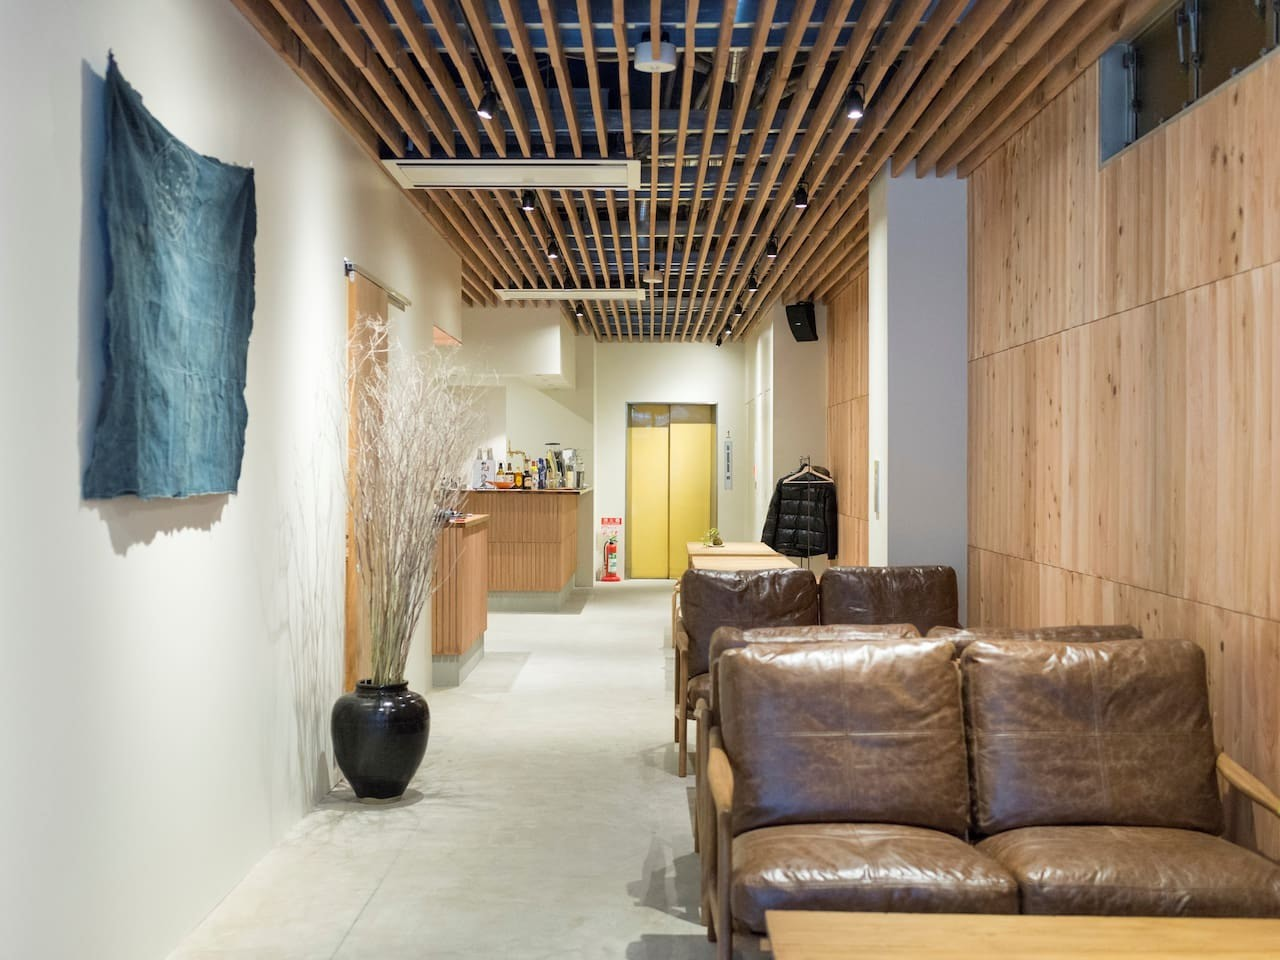 Obi Hostel is located in the bustling suburb of Chūō-ku